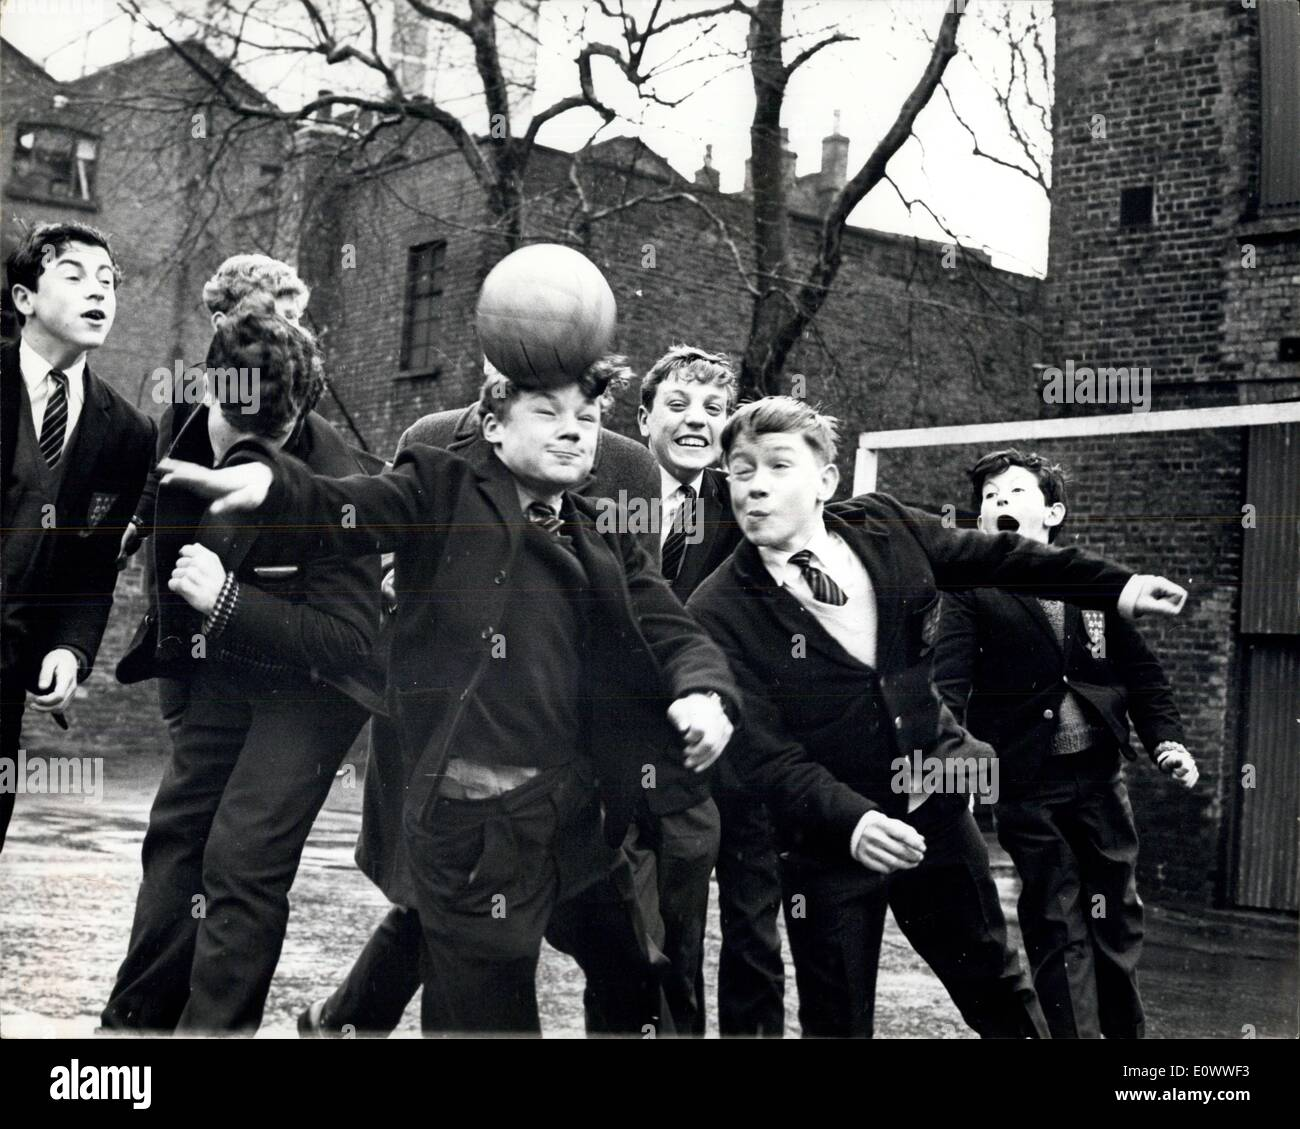 Mar. 25, 1964 - 13-Year Old Sign As Professional Footballers: Two boys milled around on the school playground at Davenant Foundation Grammar School in Stepney yesterday, making soccer history. For at 13, Terry Brisley and Dennis Rofe have been signed up by Leyton Orient, to become the youngest players ever to join a League club, after being spotted by a talent scout in a schoolboys cup final. Both weigh about seven stone, and with Terry 4 ft 7 1/2 ins and Dennis an inch taller, they are probably the smallest players ever to be signed - Stock Image